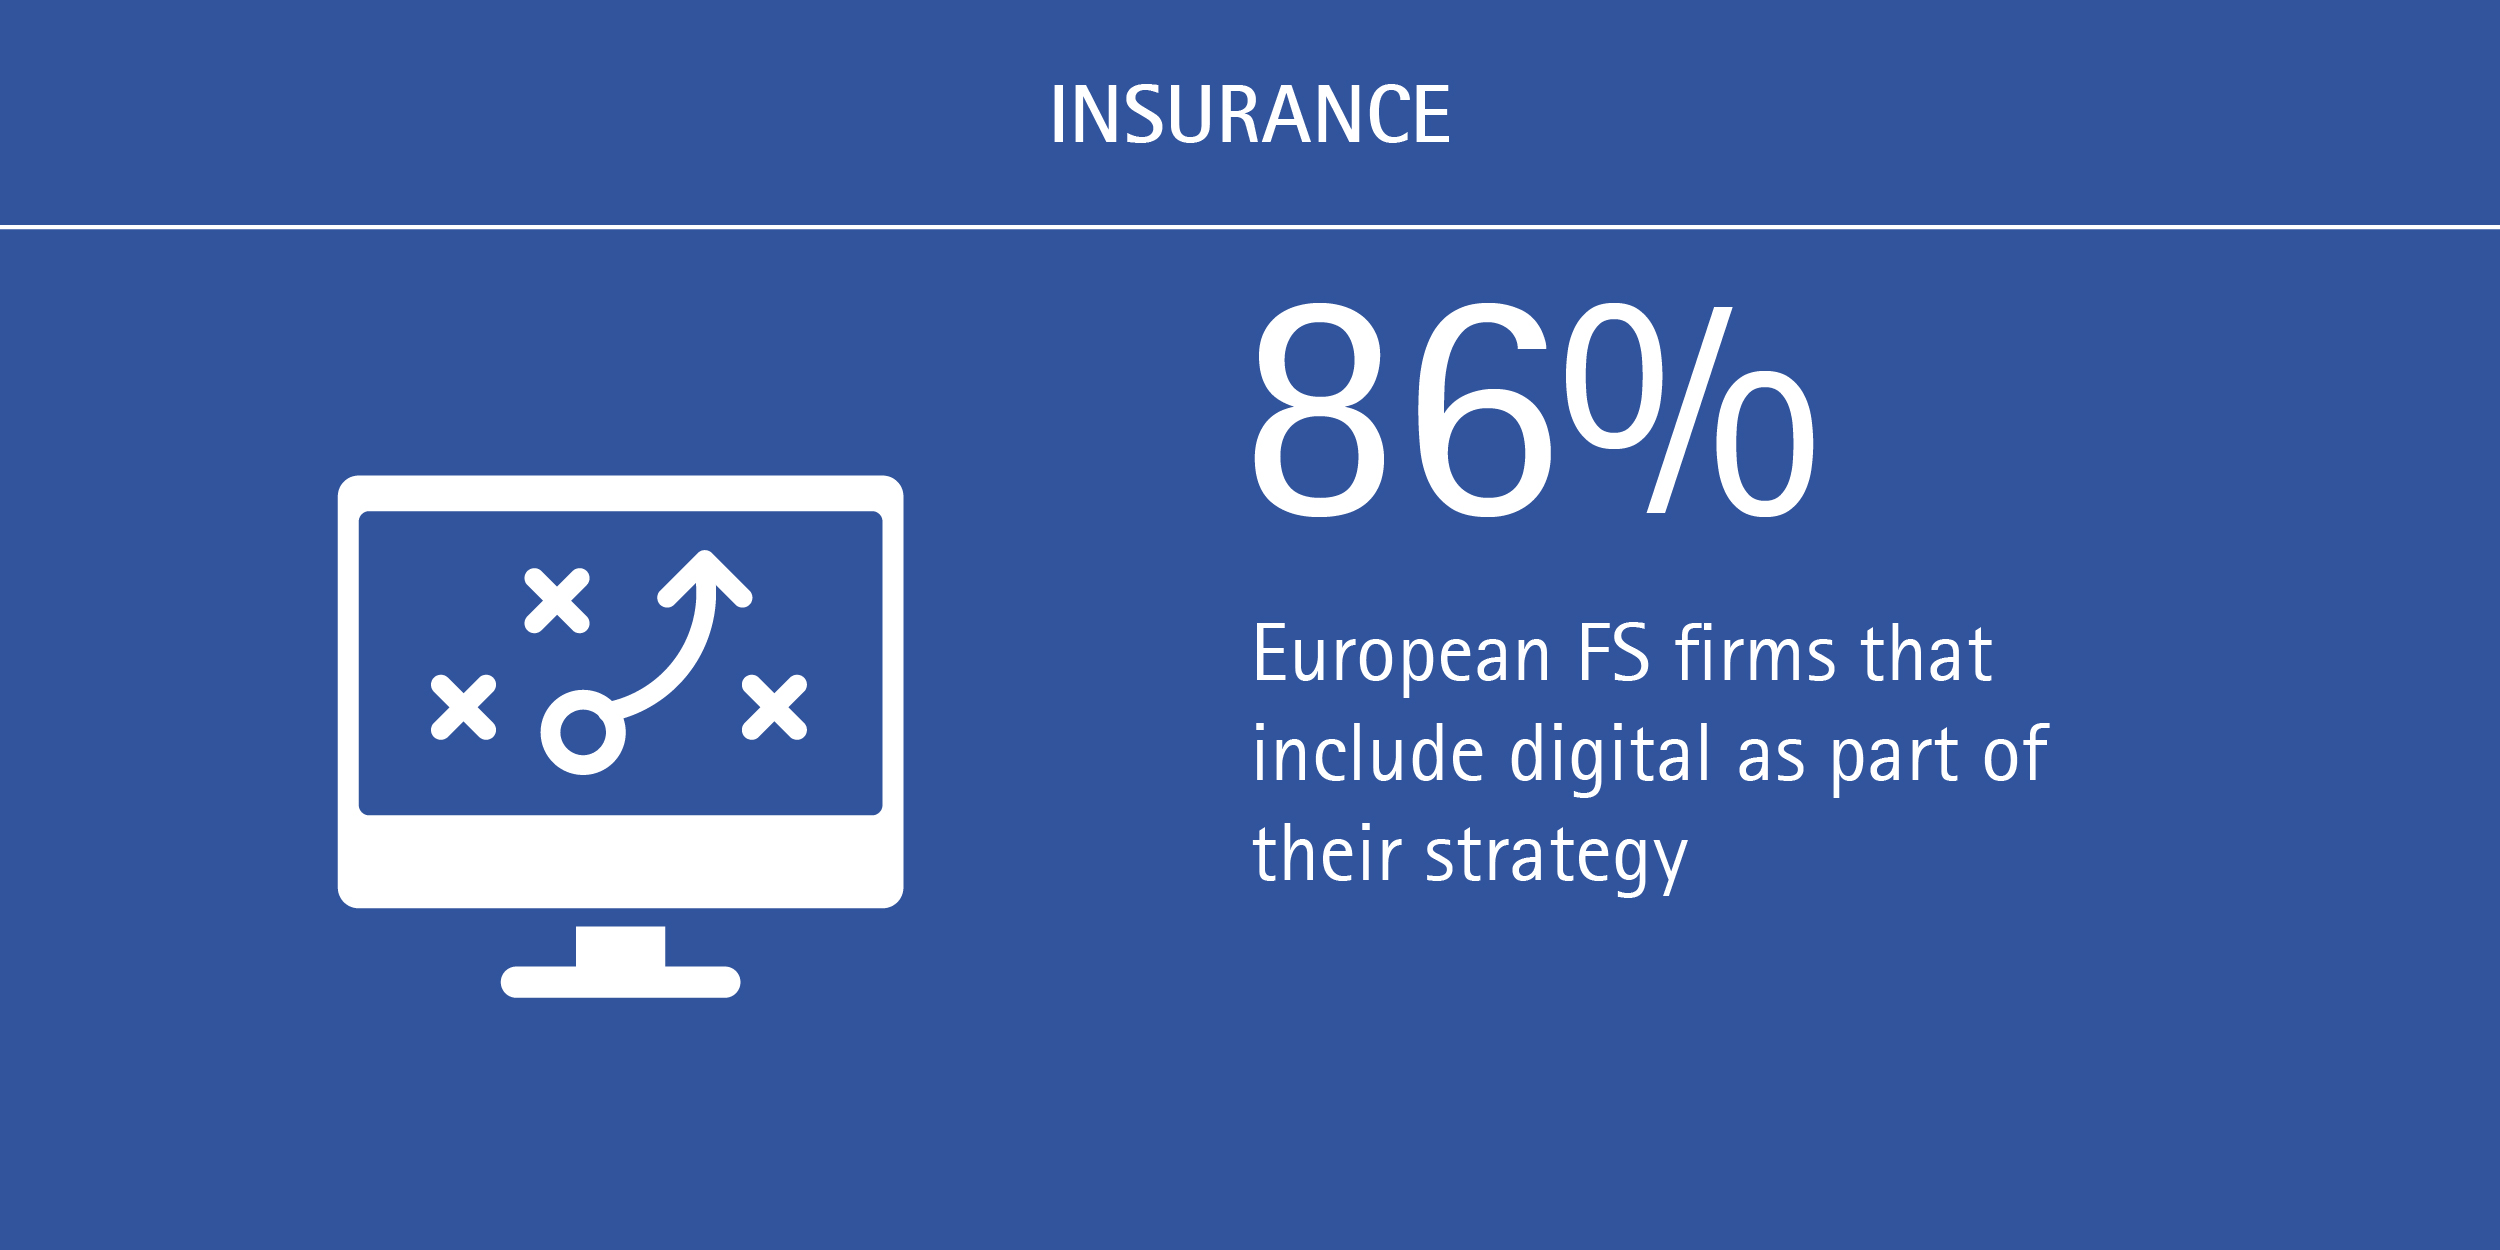 European insurers and banks have digital vision and strategy, but need to act_Accenture INS (FIgure 1)